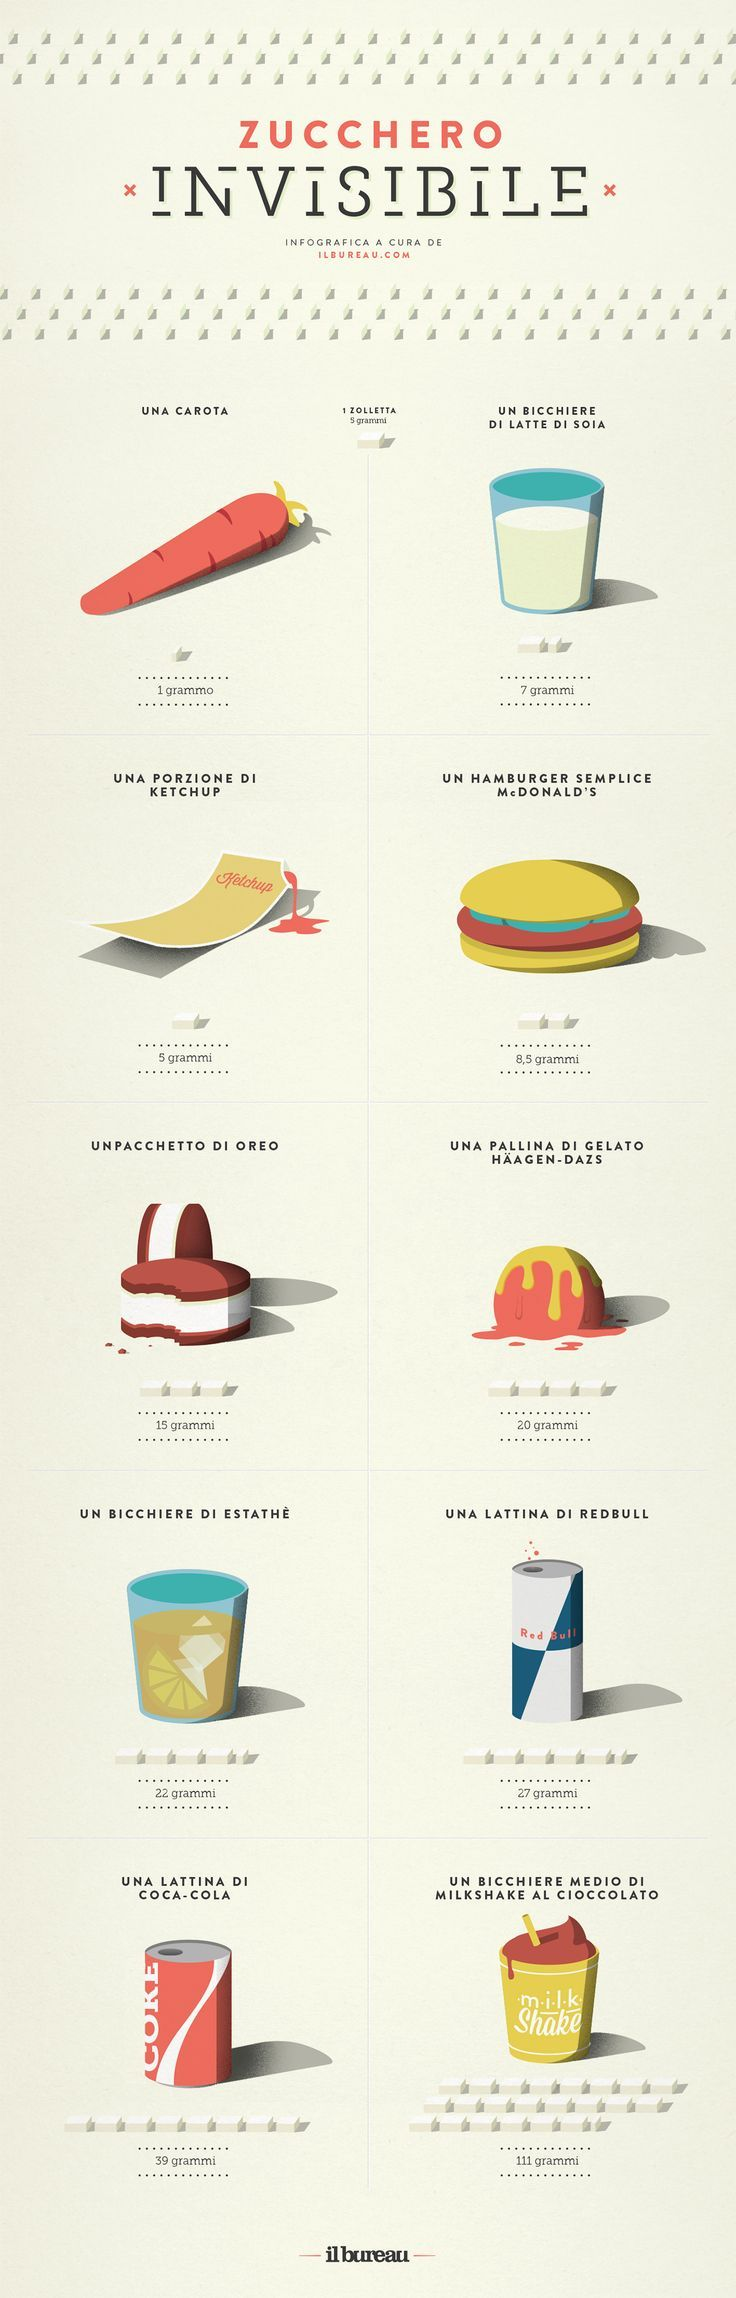 Food Portions by ilbureau #Infographic #Food_Portions #Design #infographics